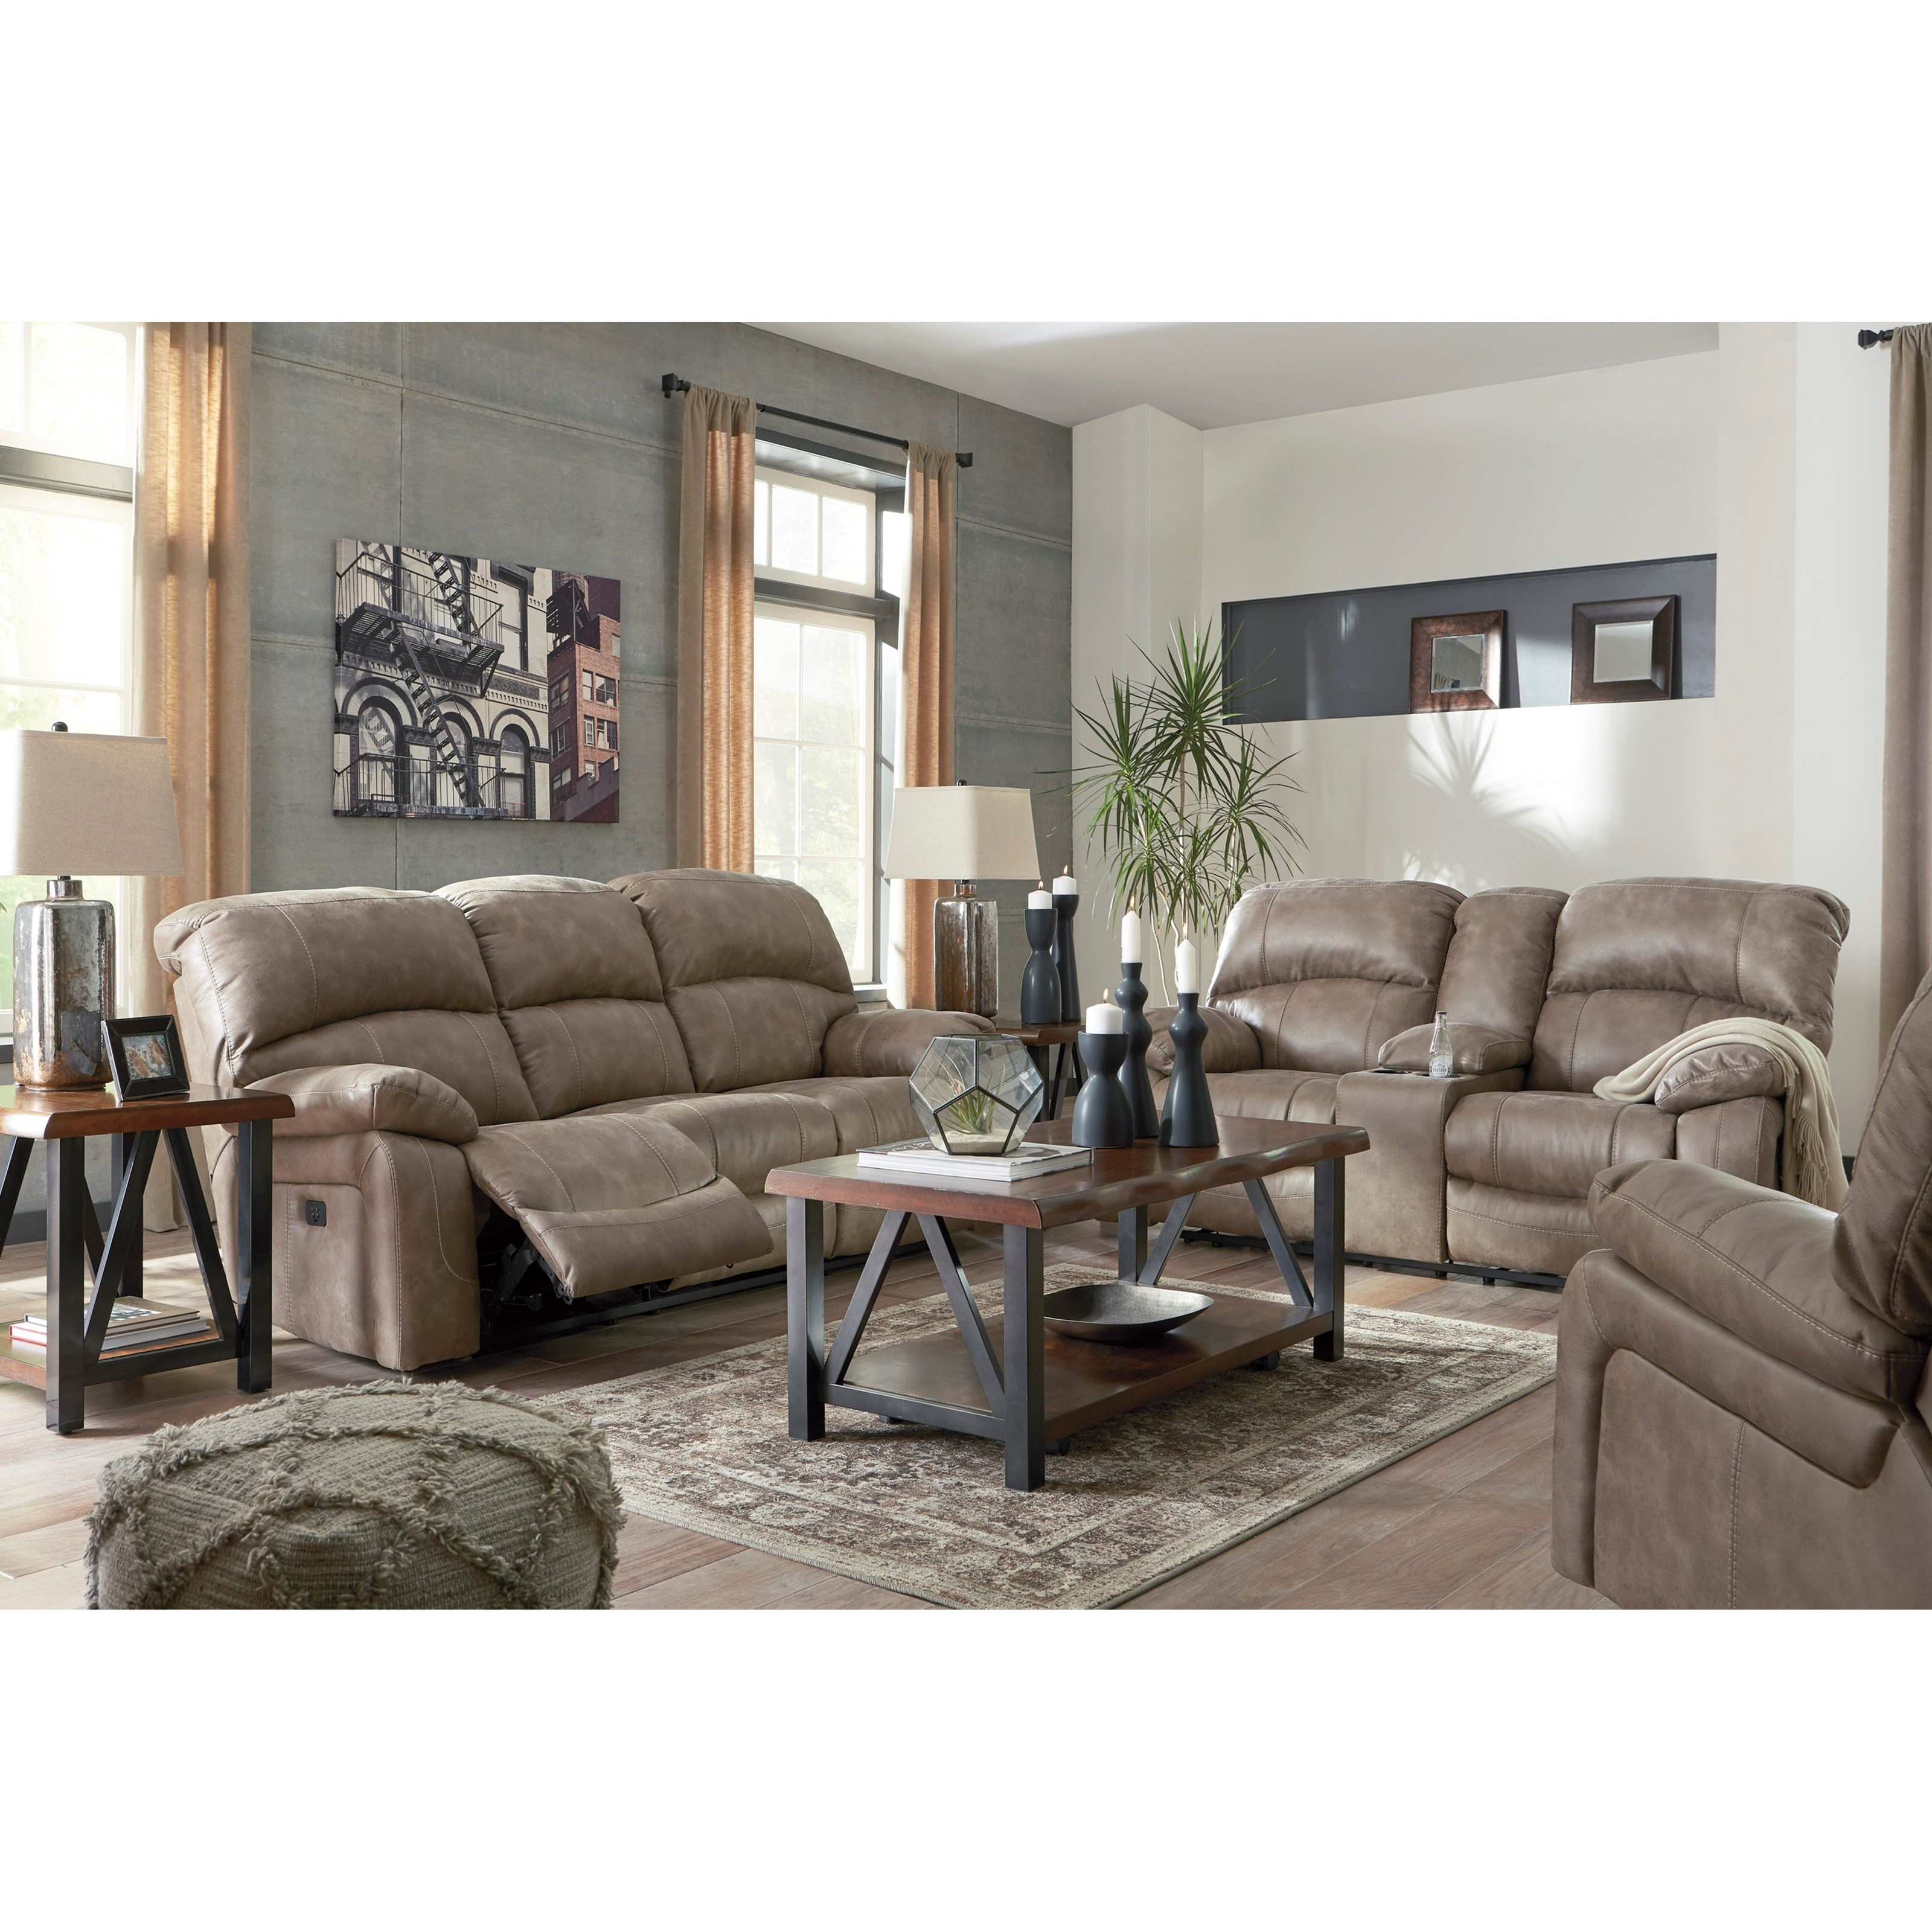 Signature Design By Ashley Dunwell Reclining Living Room